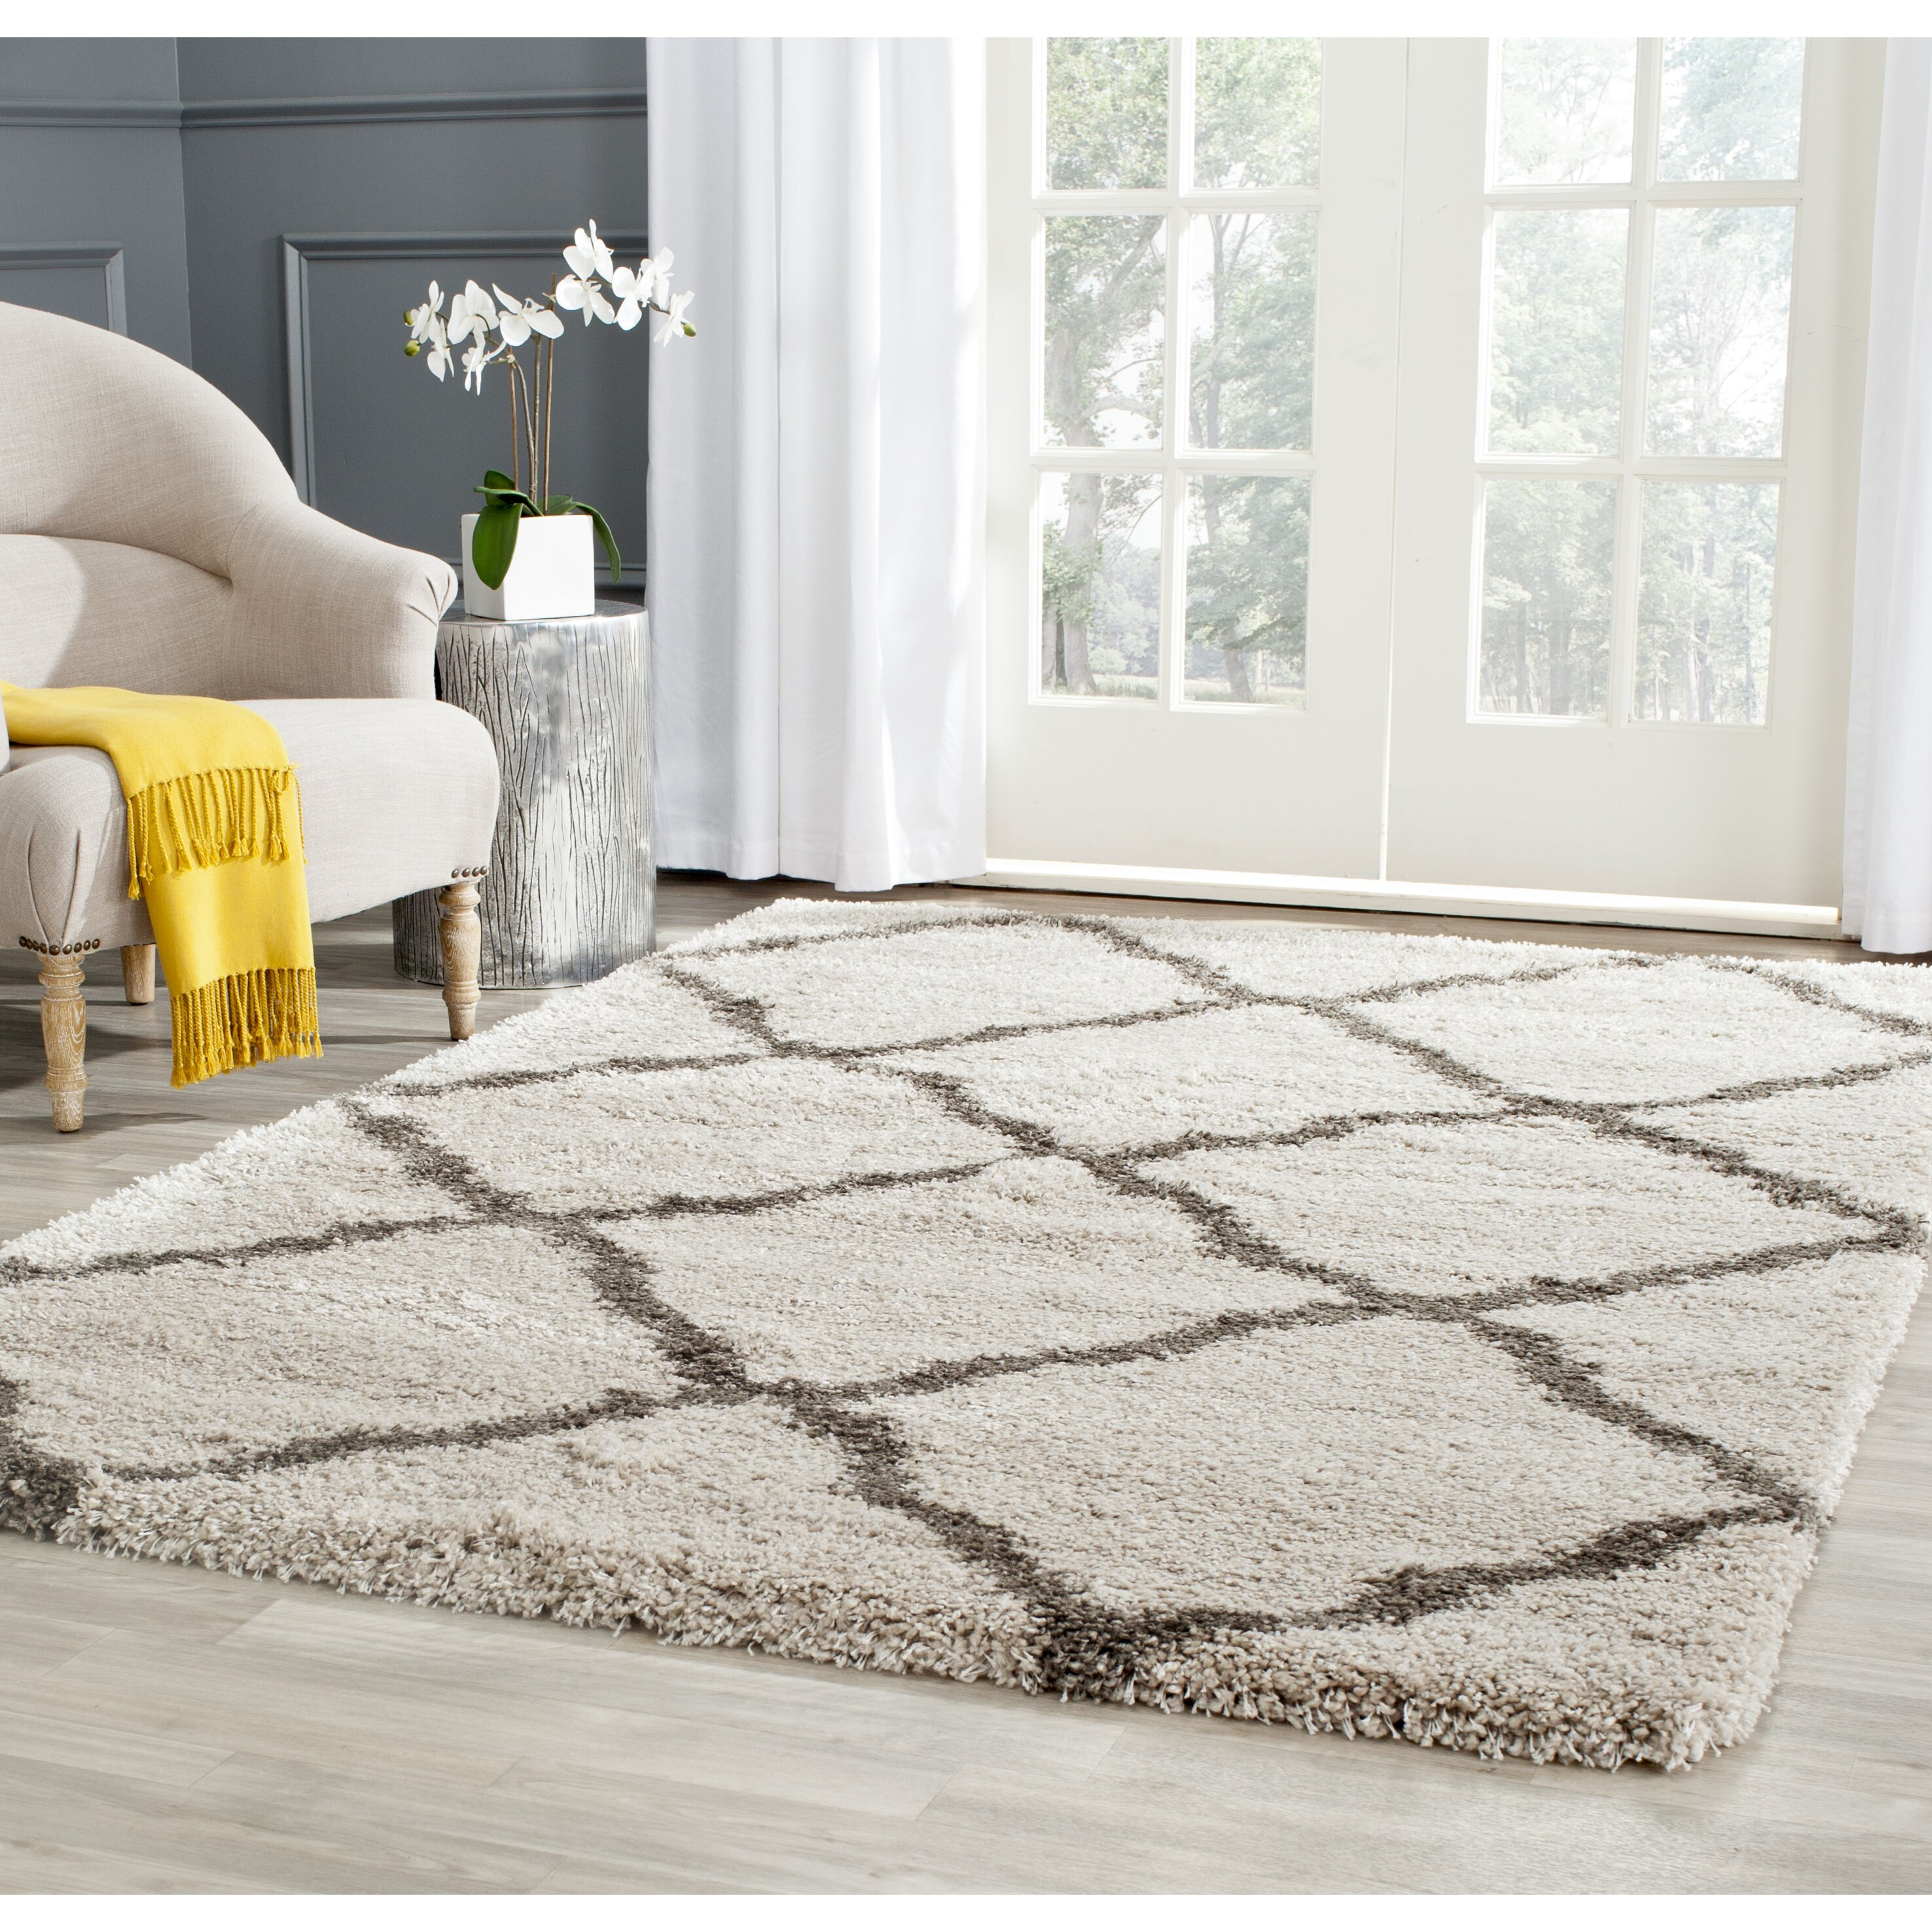 Safavieh Belize Shag Taupe Amp Grey Area Rug Amp Reviews Wayfair